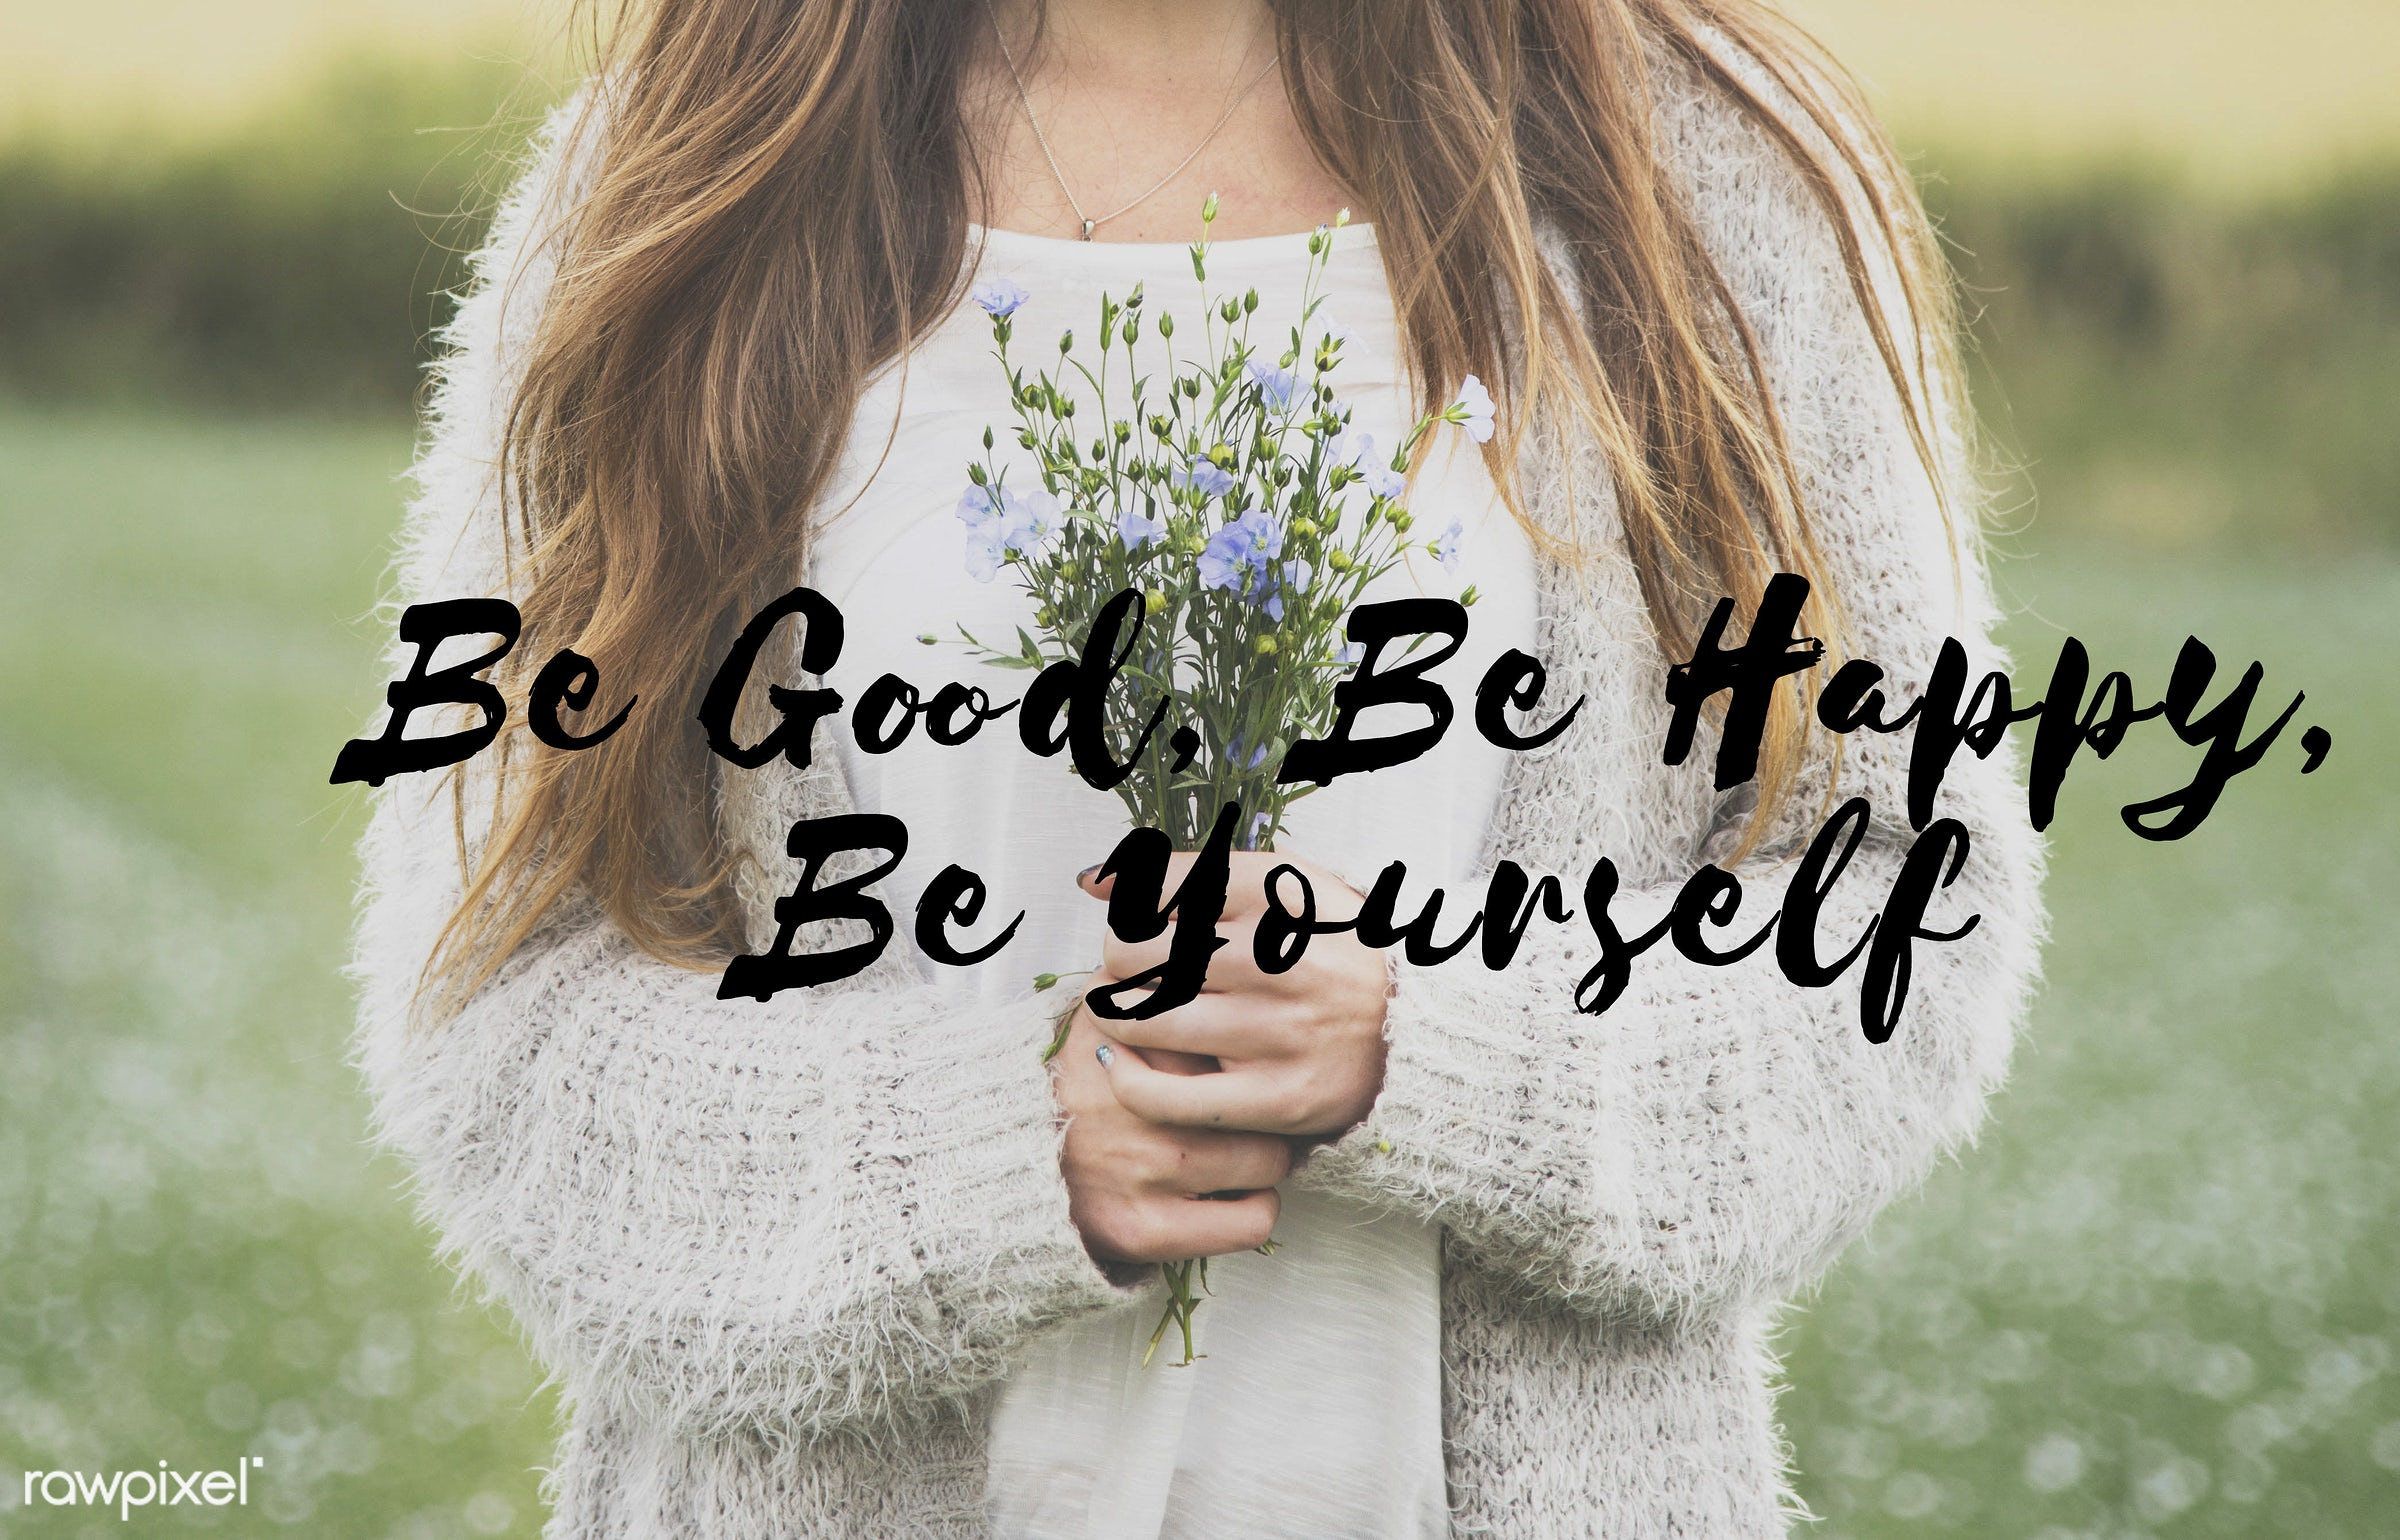 youth, be good, be happy, be yourself, beautiful, beauty, bloom, blossom, caption, caucasian, dark blonde, difference,...